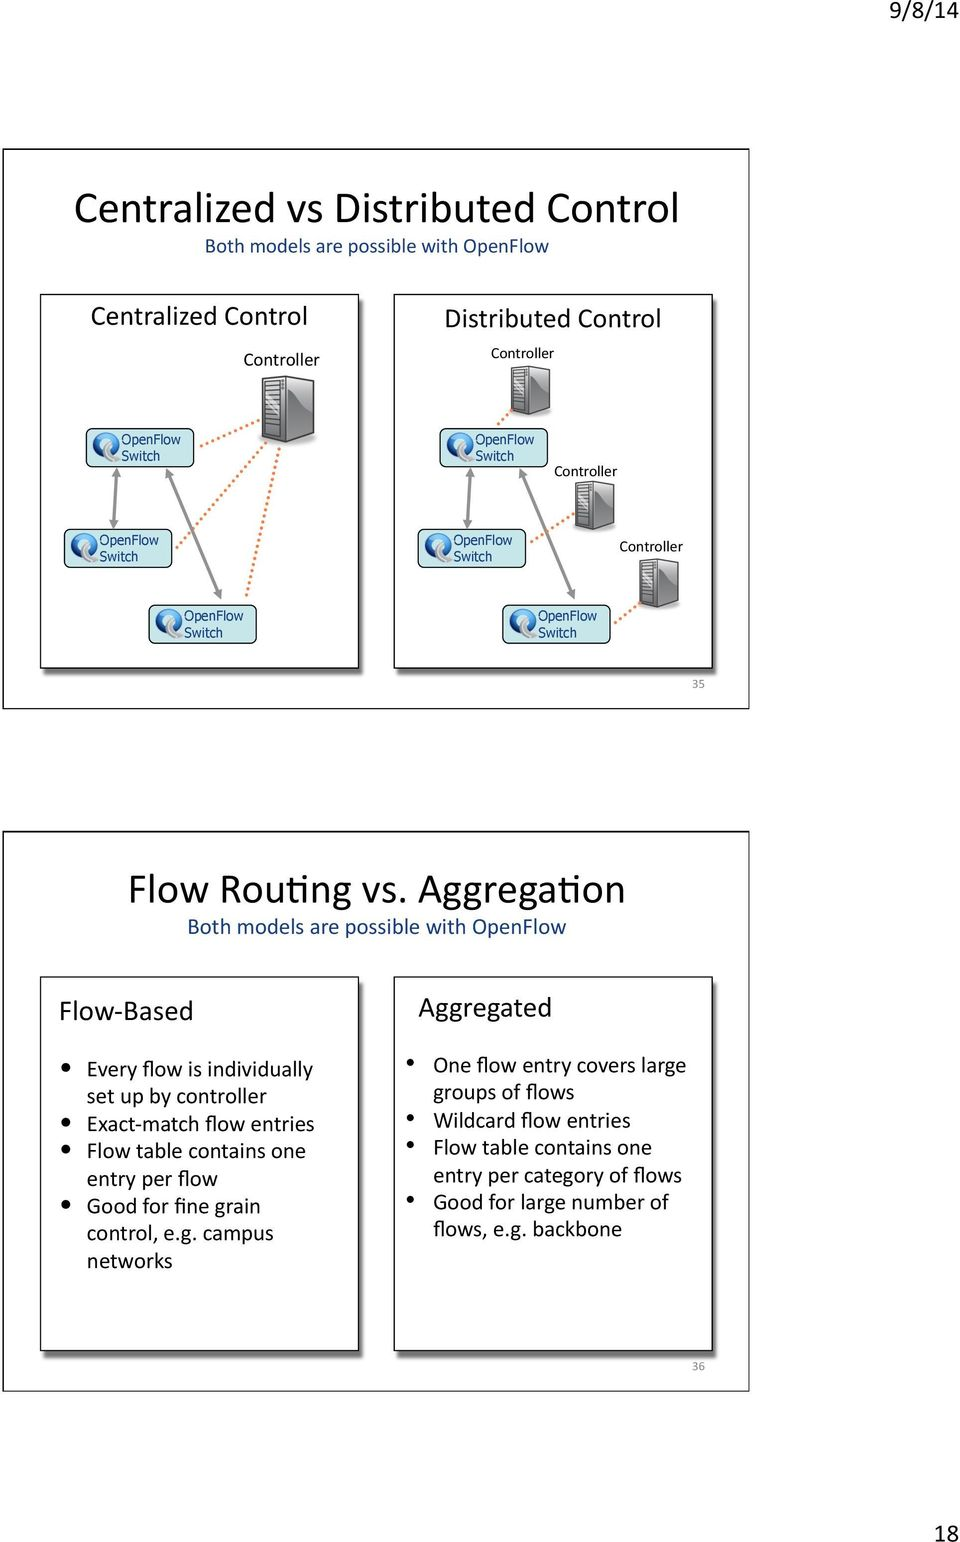 AggregaVon Both models are possible with OpenFlow Flow- Based Every flow is individually set up by controller Exact- match flow entries Flow table contains one entry per